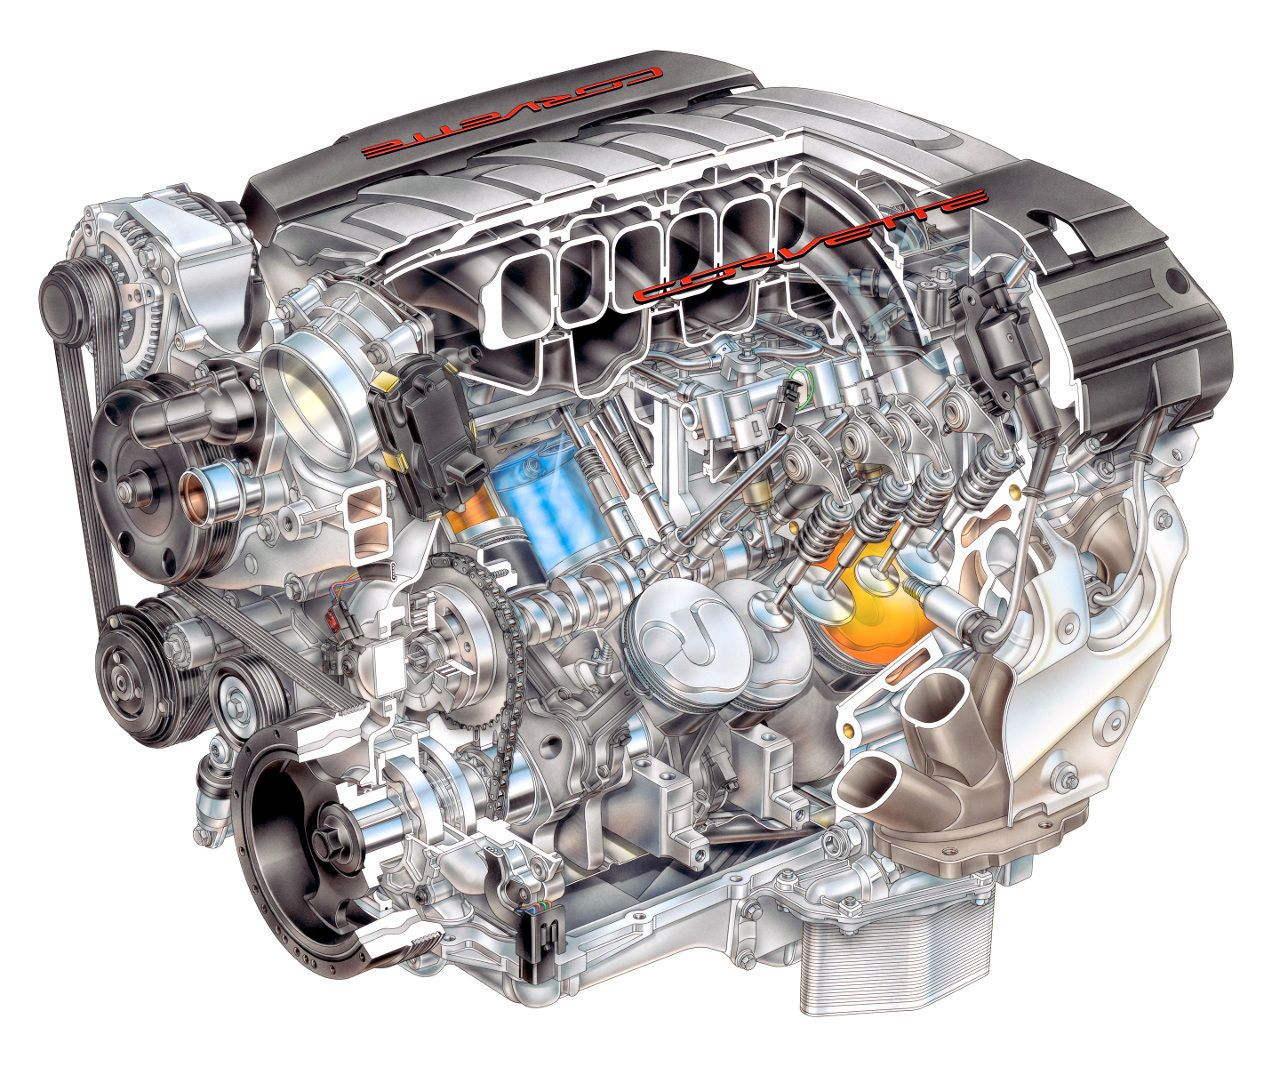 The New Lt1 V8 5th Generation Gm Small Block That Will: 2014 Chevrolet Corvette Engine LT1 V8 Cutaway Poster Print